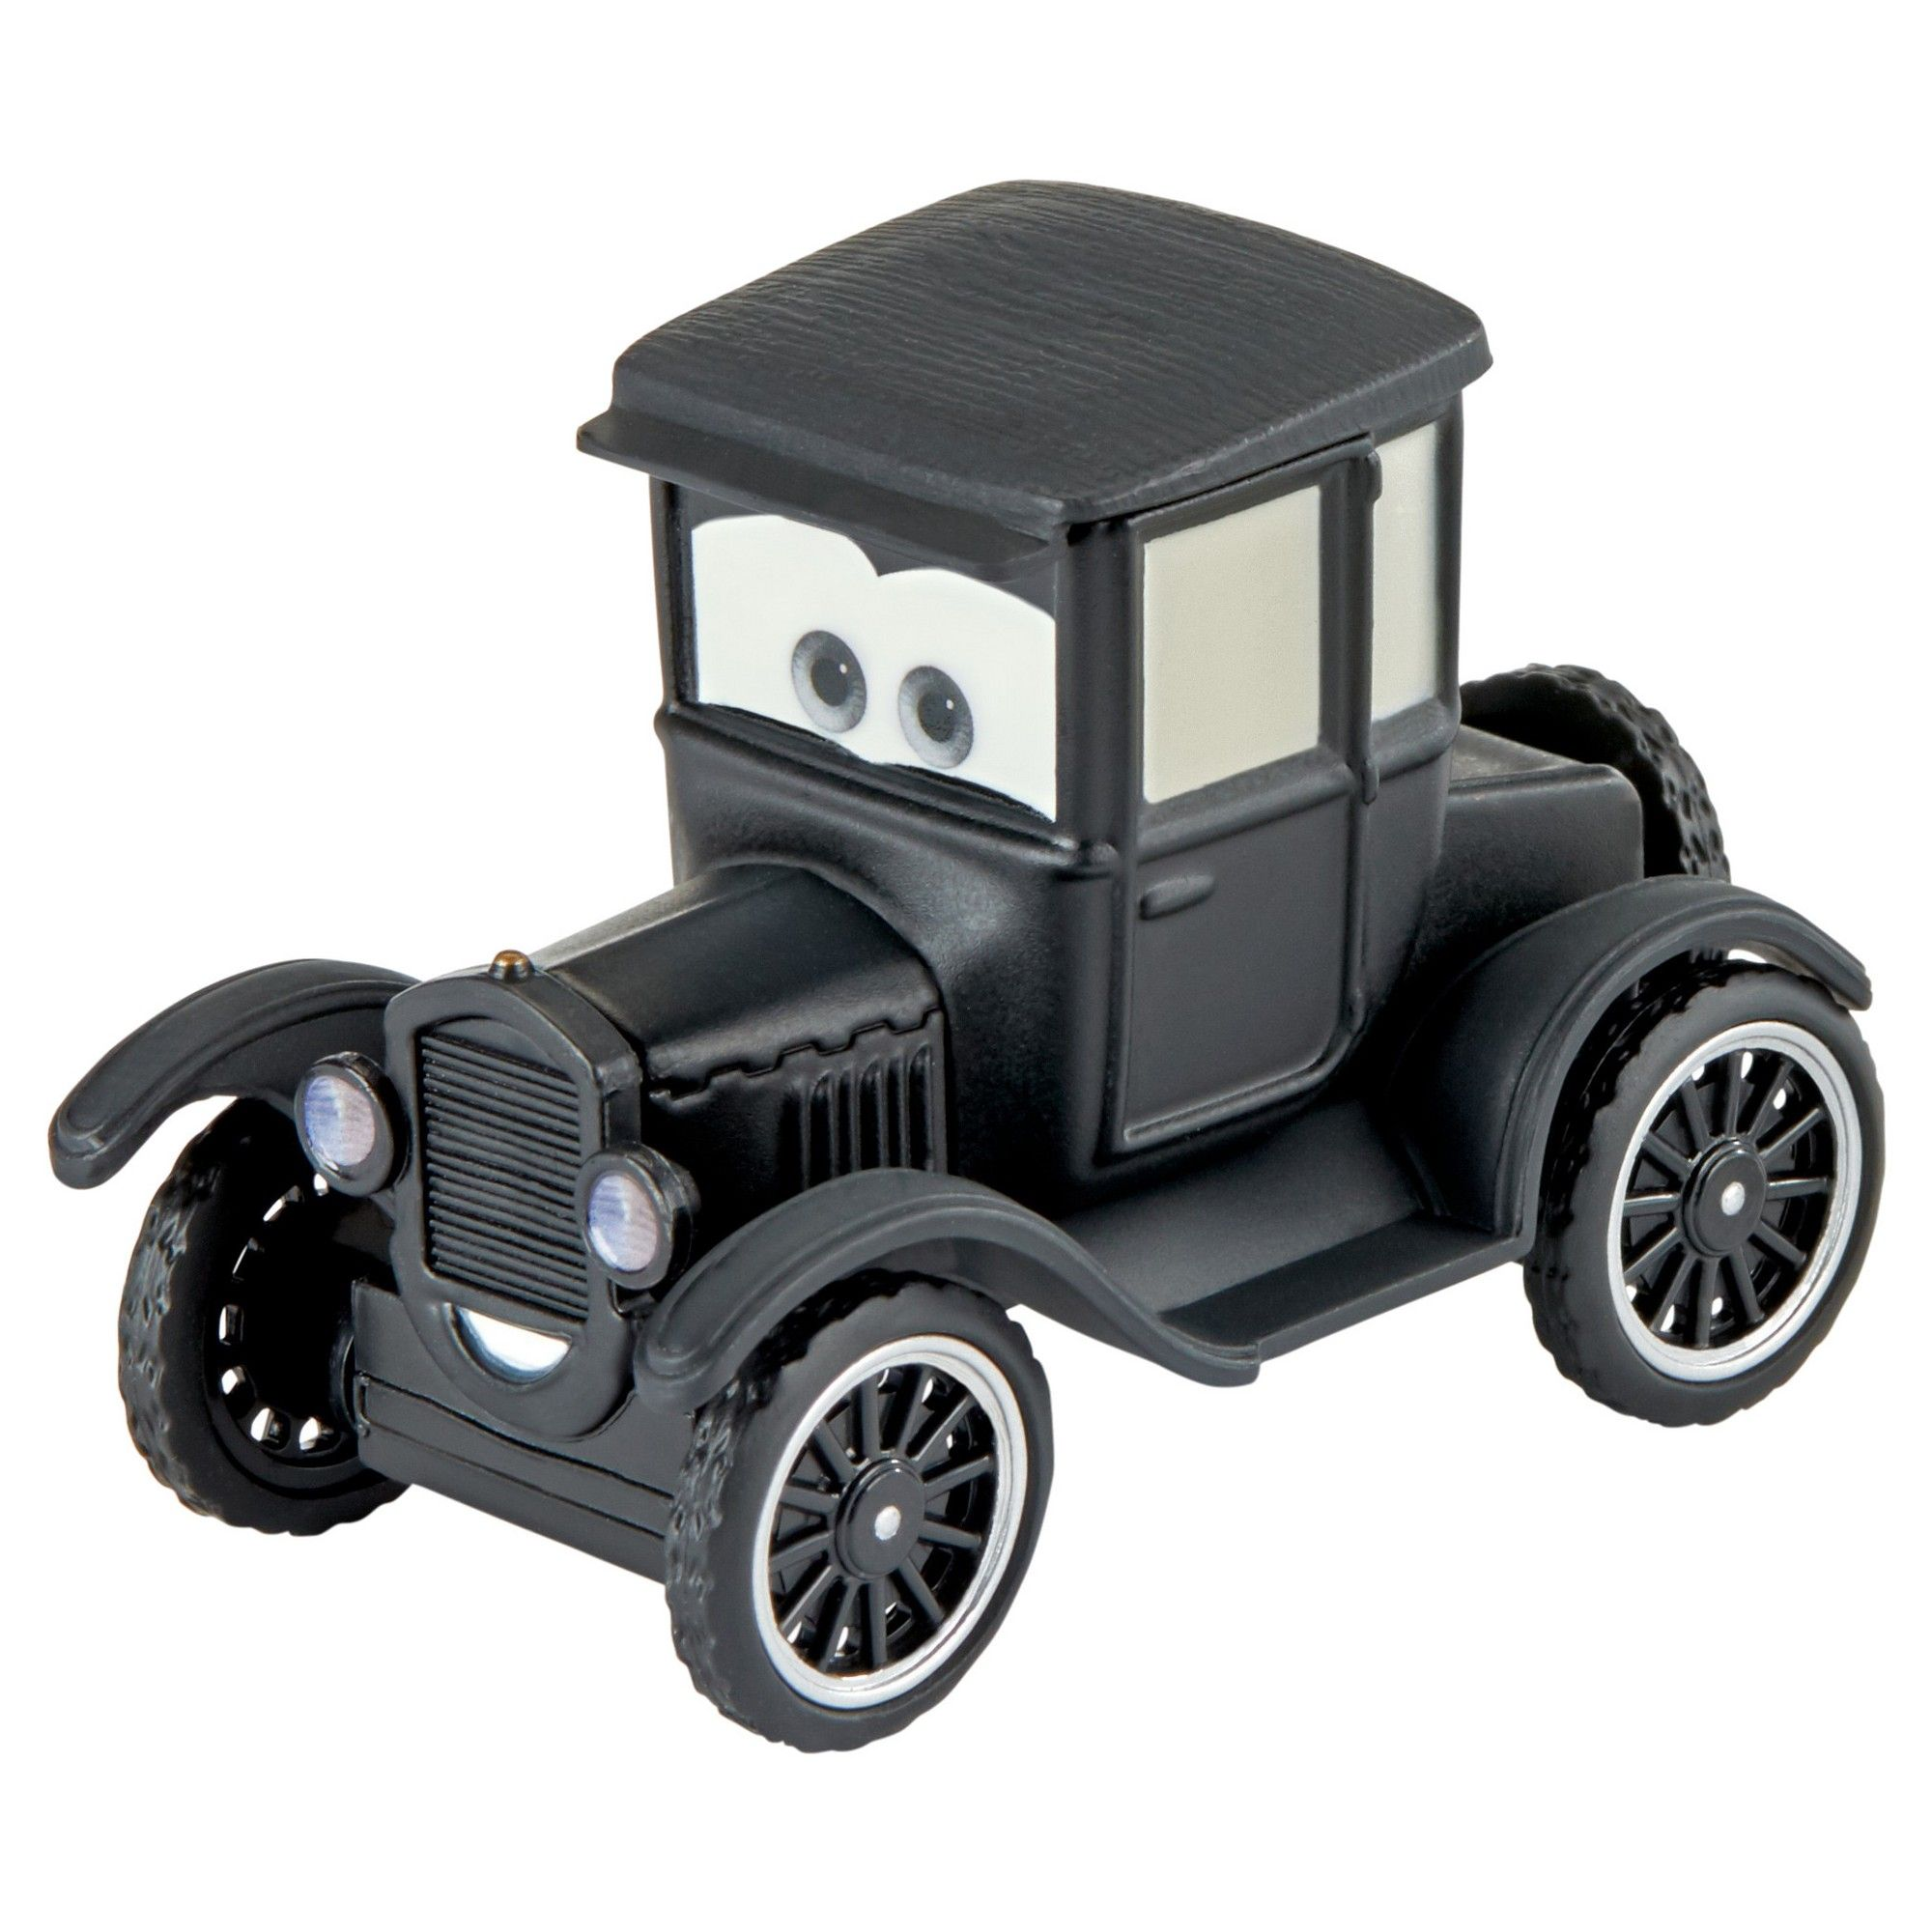 Disney Pixar Cars Precision Series Lizzie Collector Diecast Vehicle